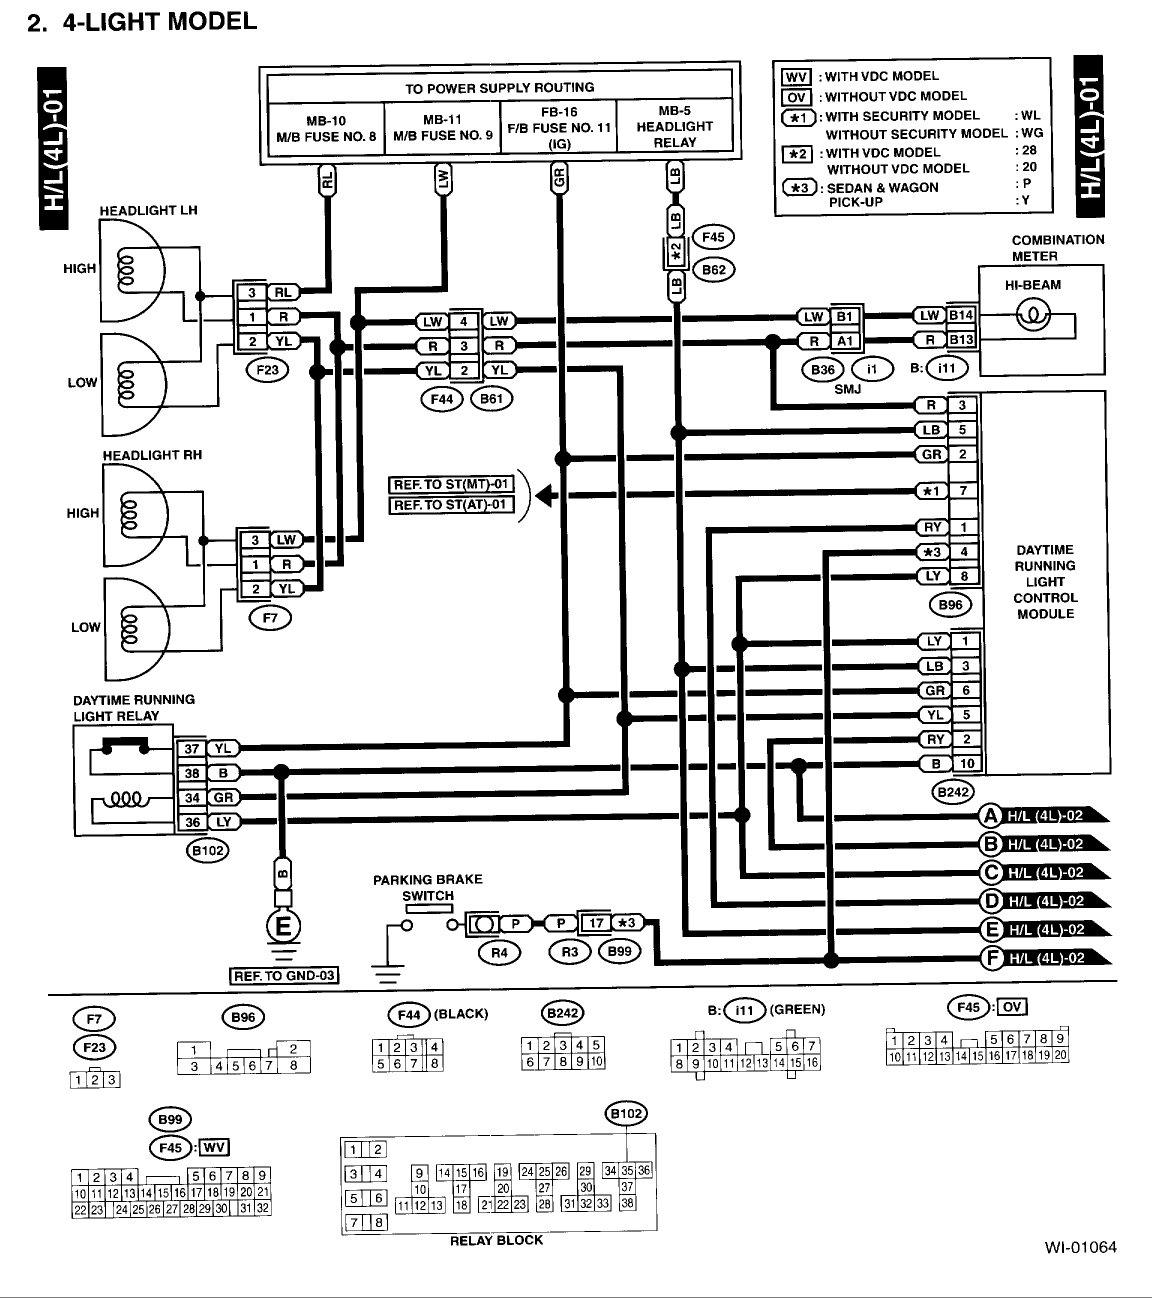 wiring diagram for 2003 subaru forester repair manual Subaru Forester Trailer Wiring